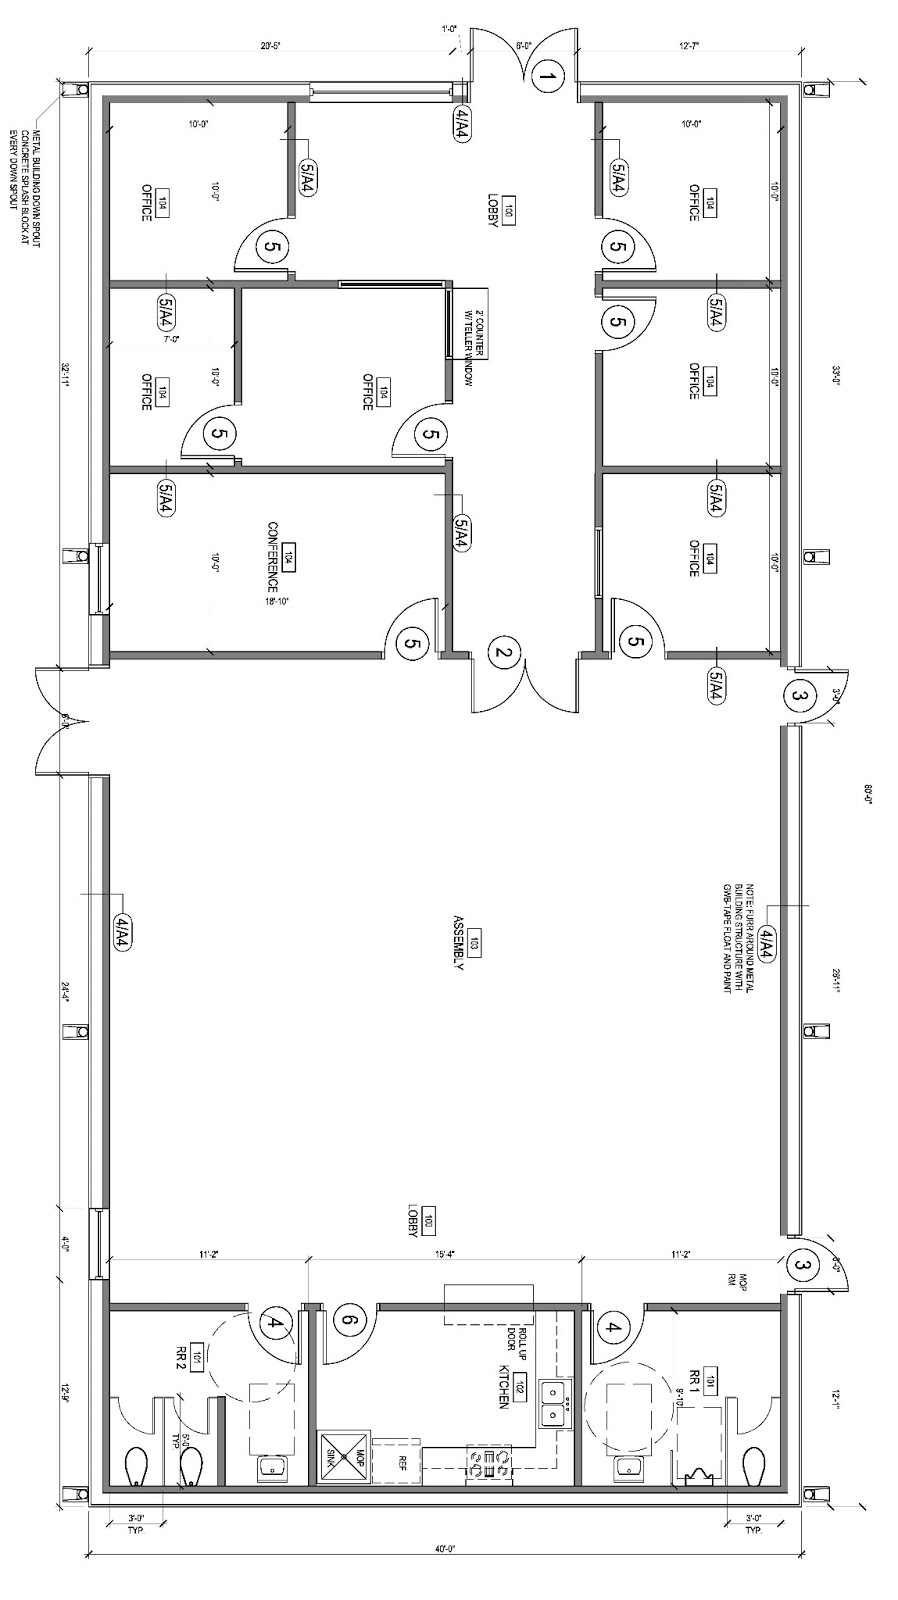 von ormy star march 2013 city approves floor plan for municipal building